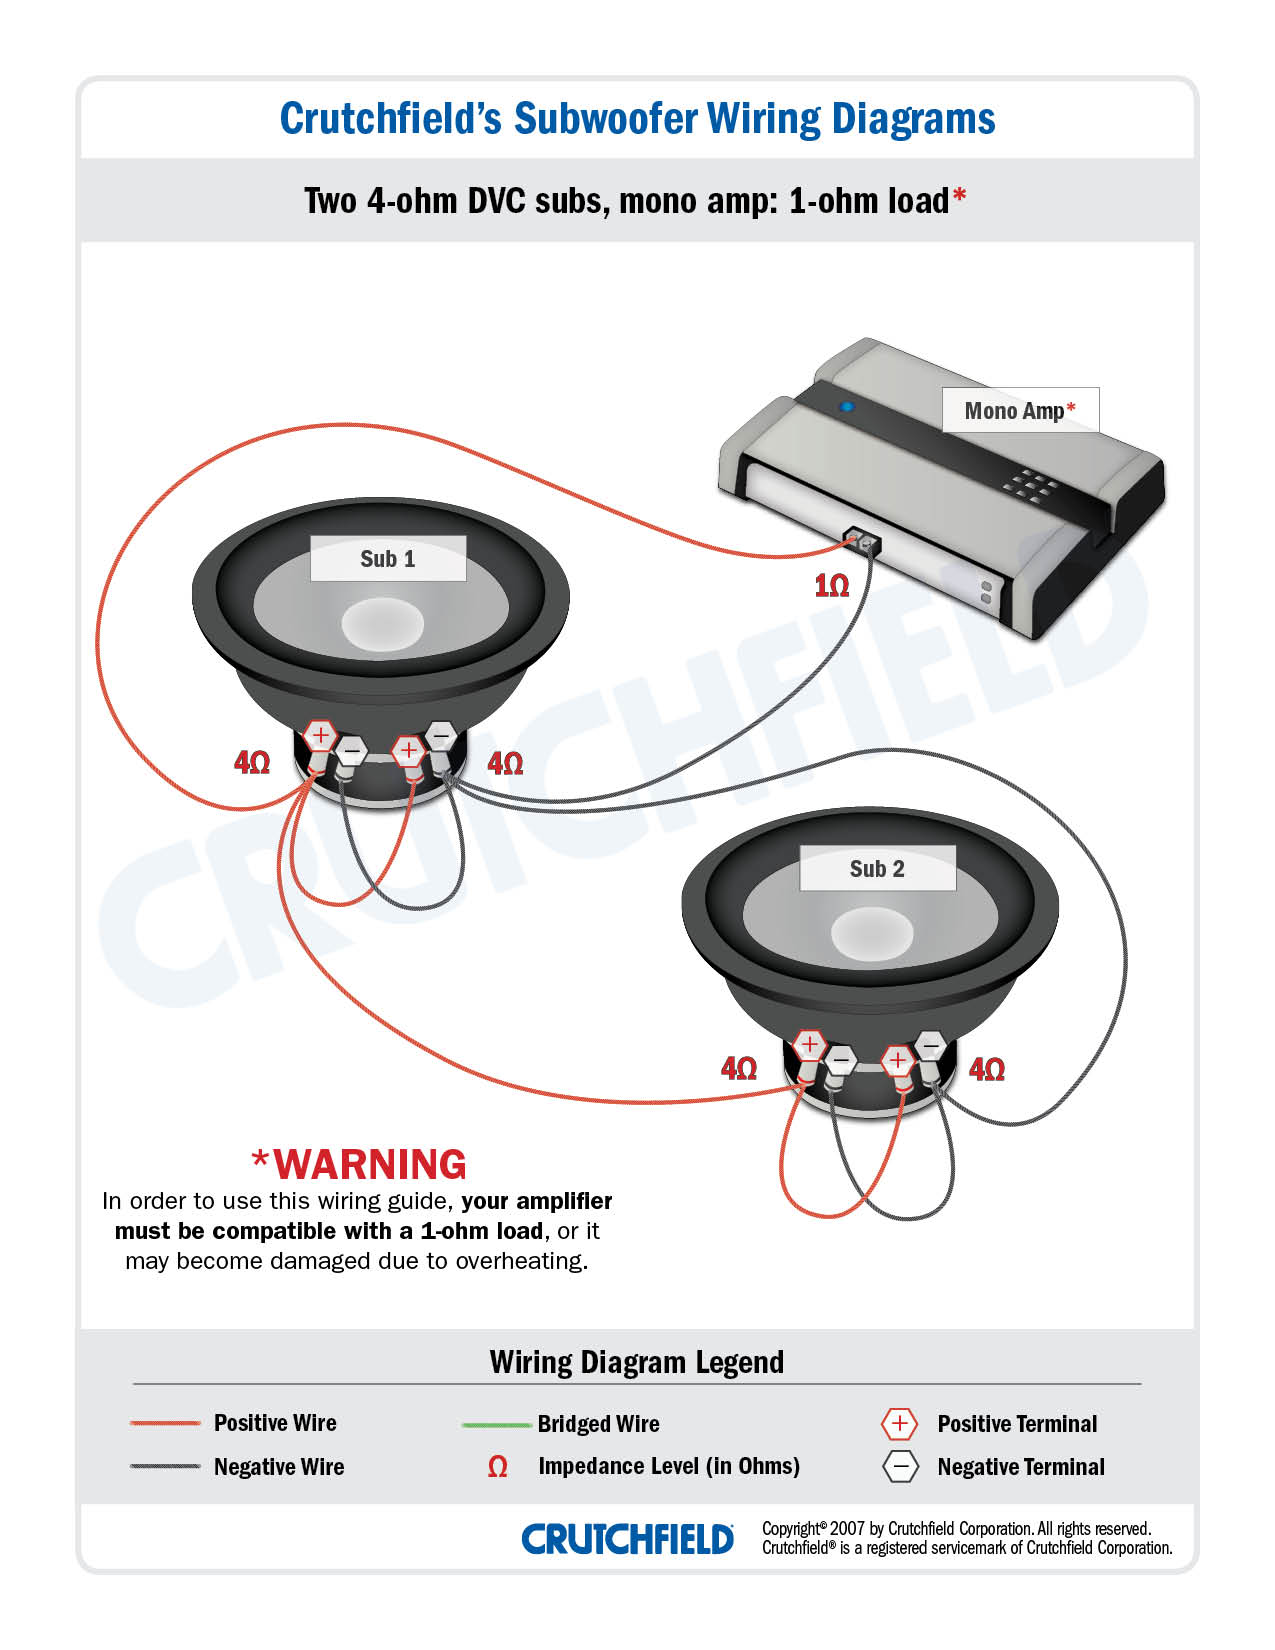 subwoofer wiring diagrams how to wire your subs rh crutchfield com 4 Ohm DVC Wiring Dual 4 Ohm Sub Wiring to 2 Ohm